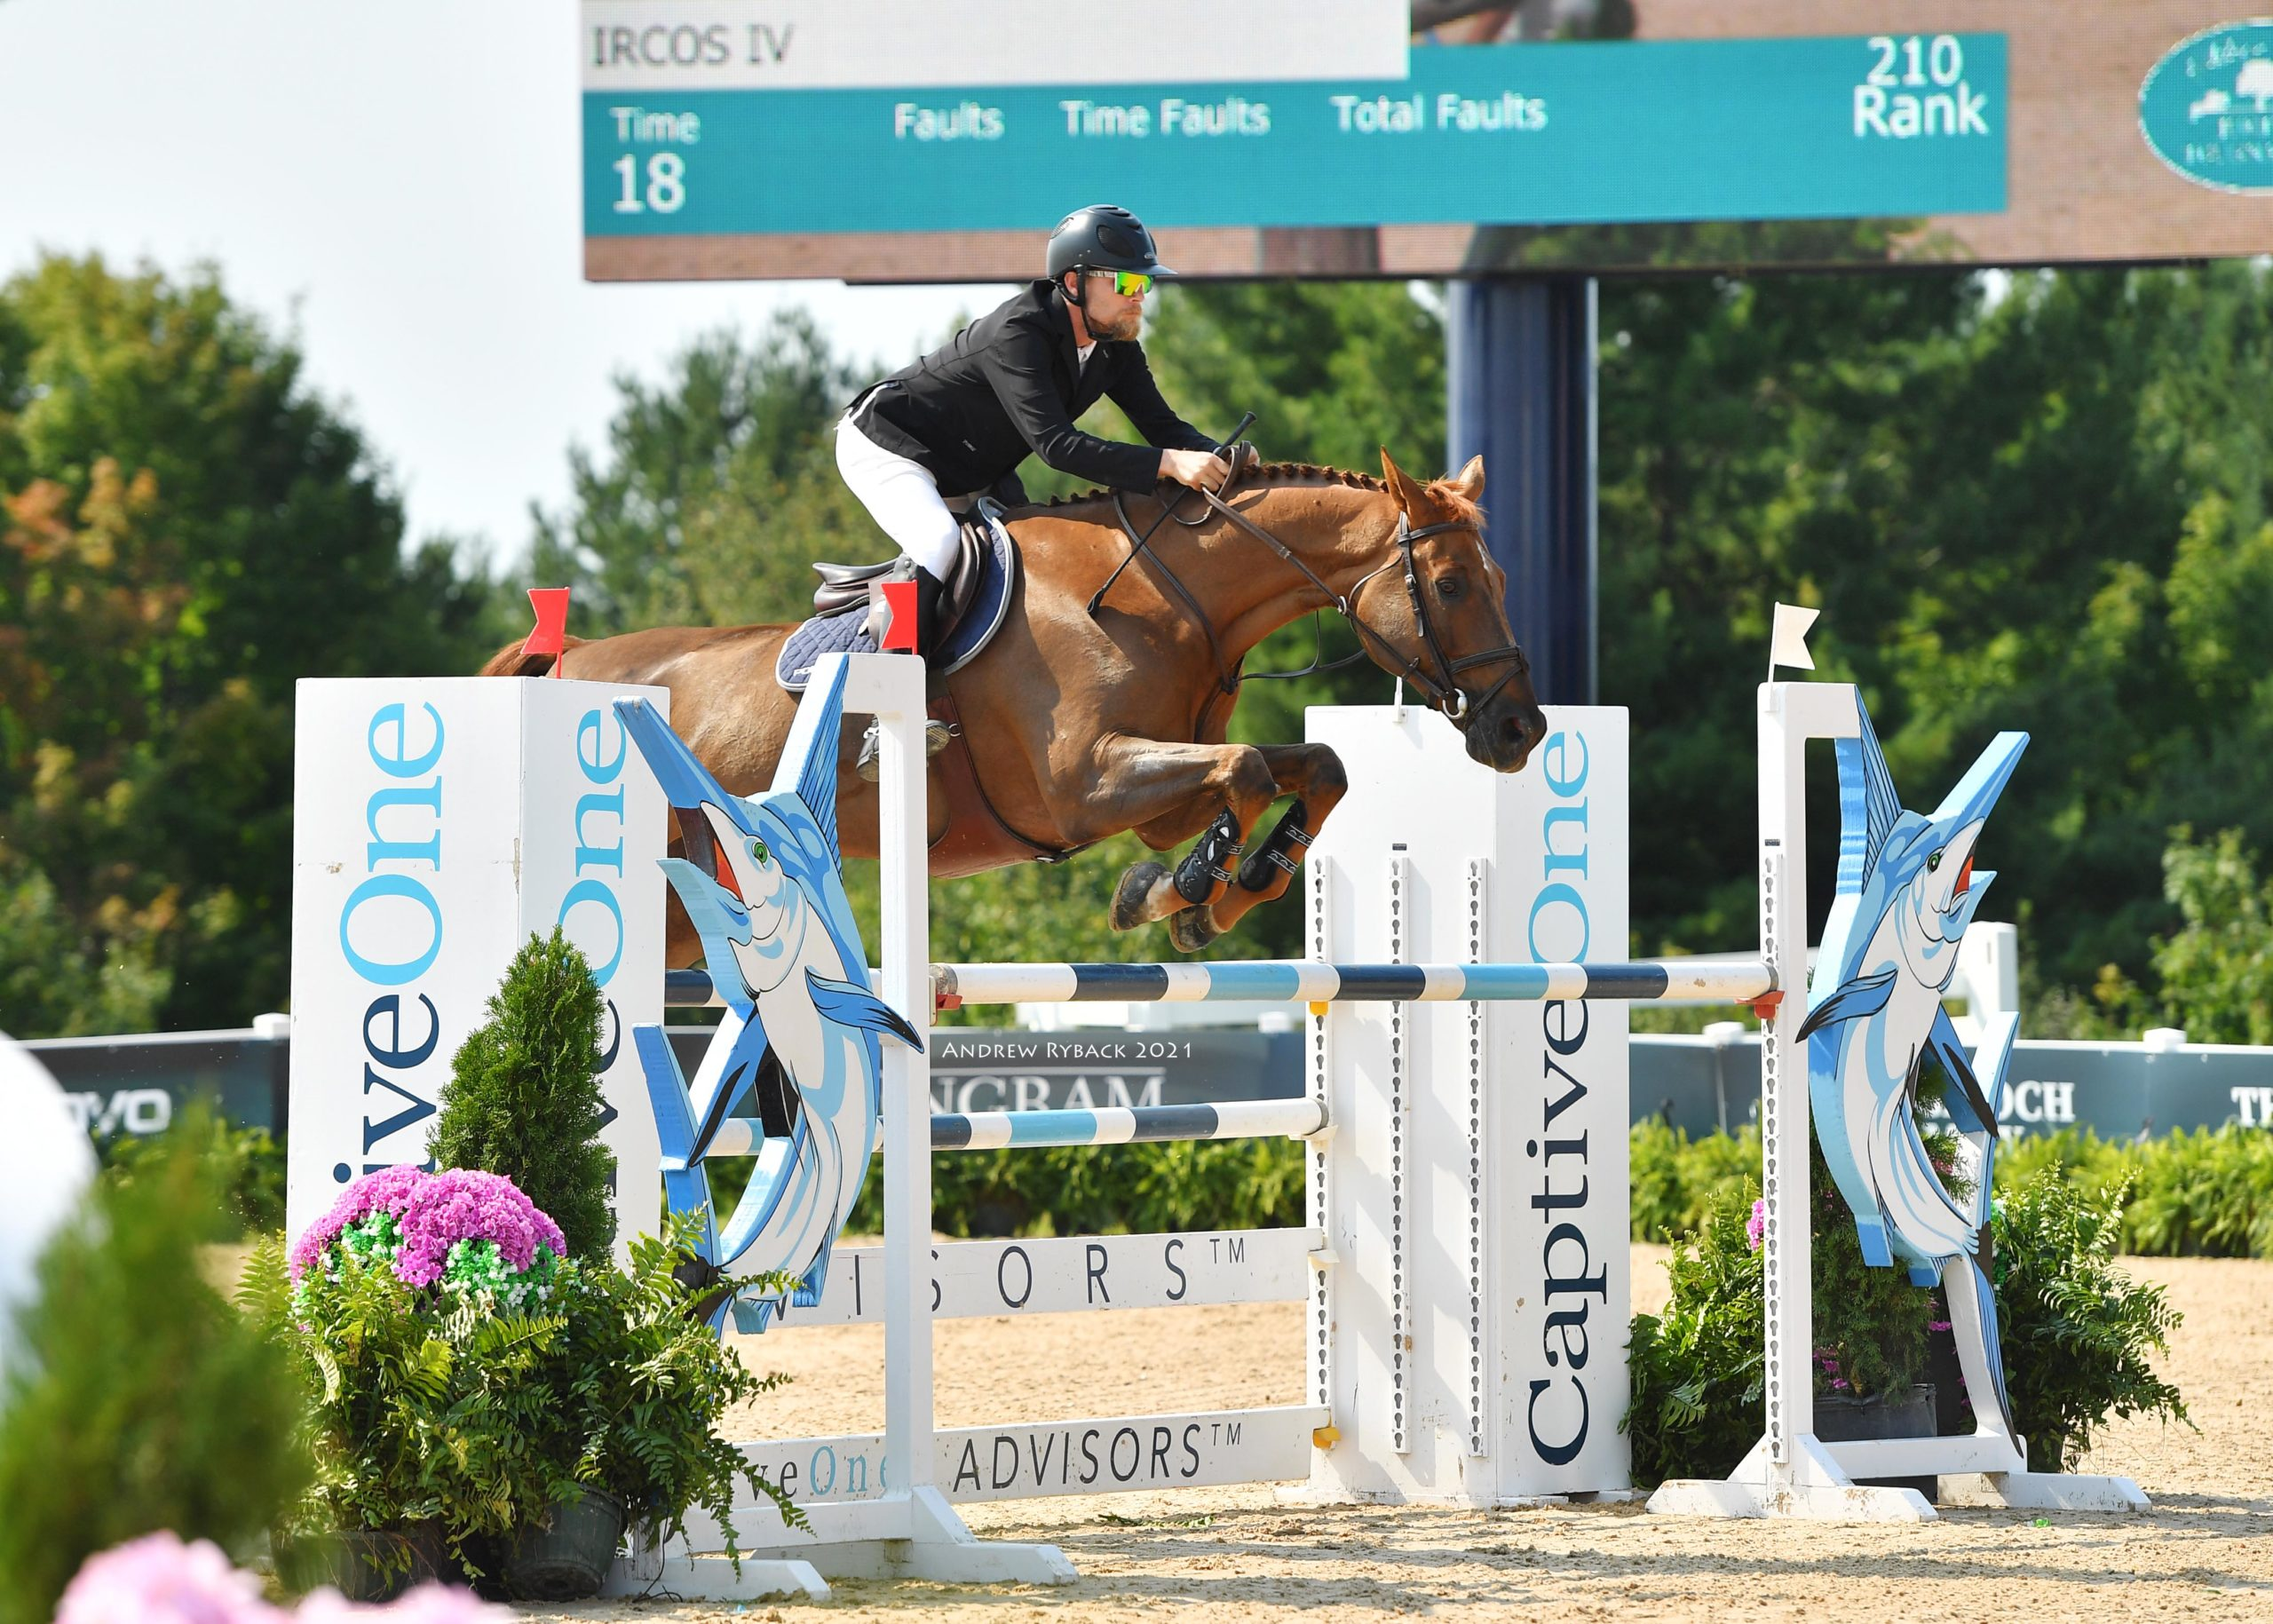 Karl Cook and Ircos win national Grand Prix in Traverse City